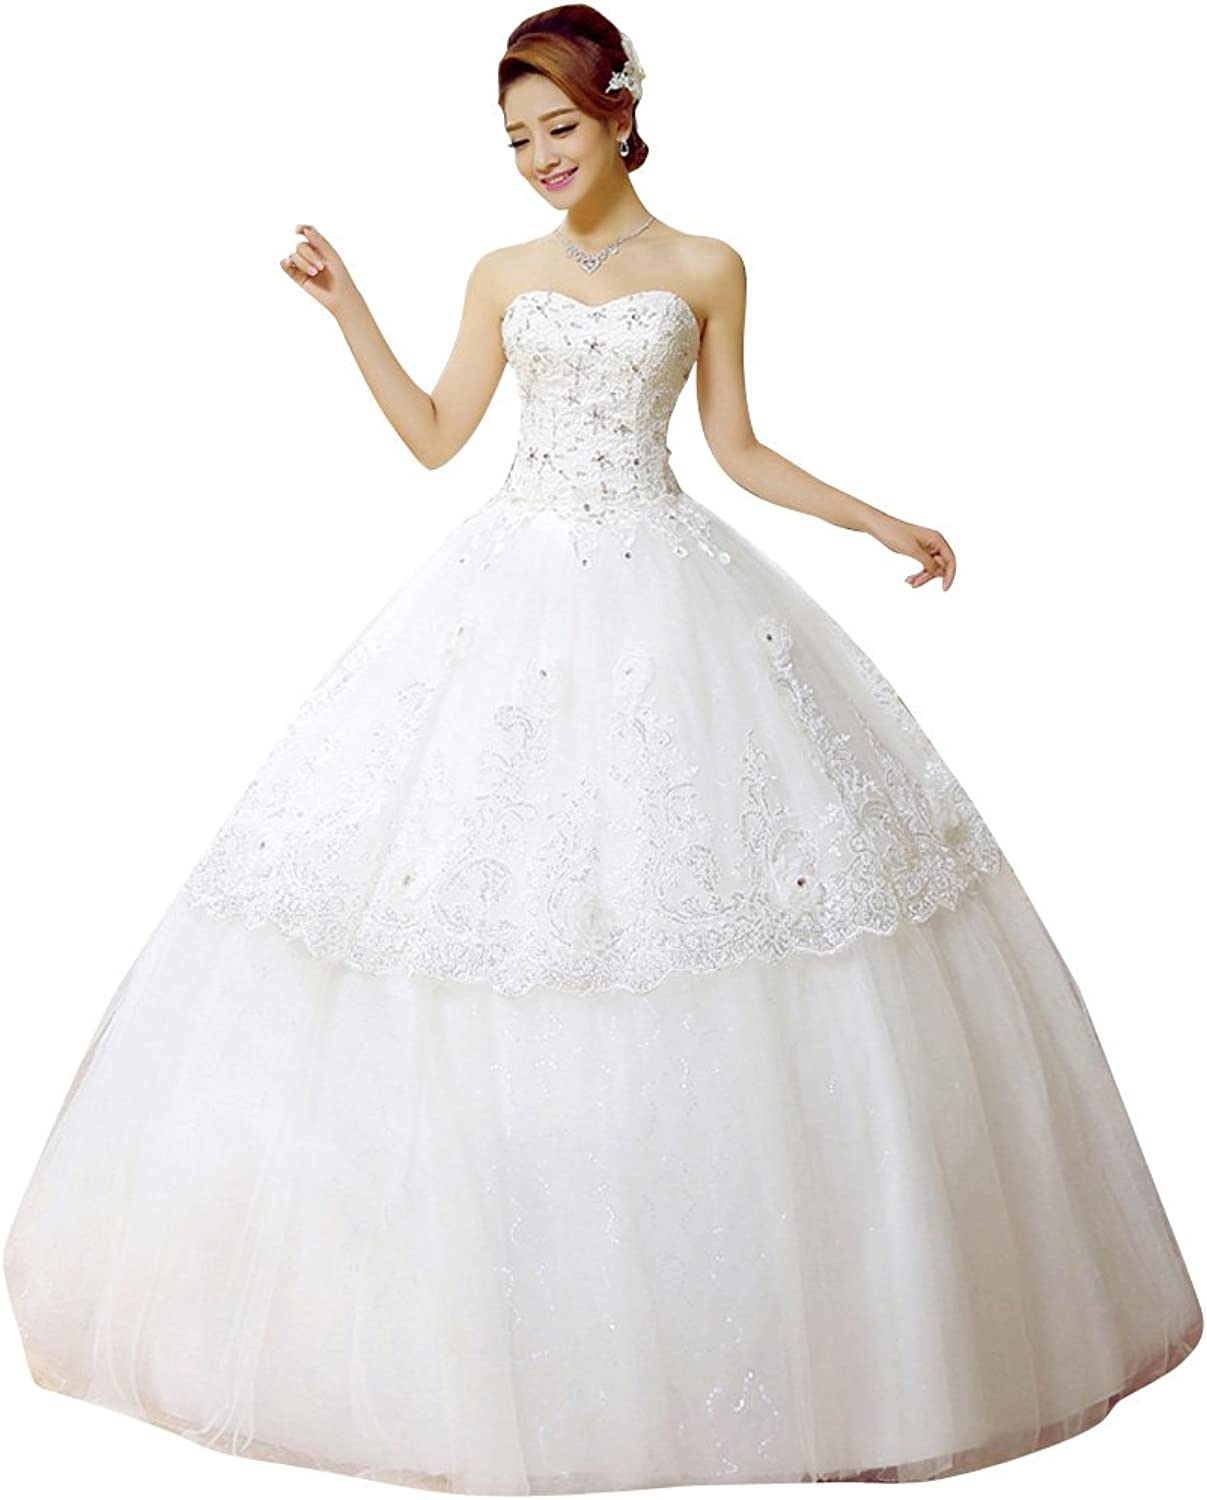 BeautyEmily Sequin Lace Sweetheart Neckline Layered Ball Wedding Gown